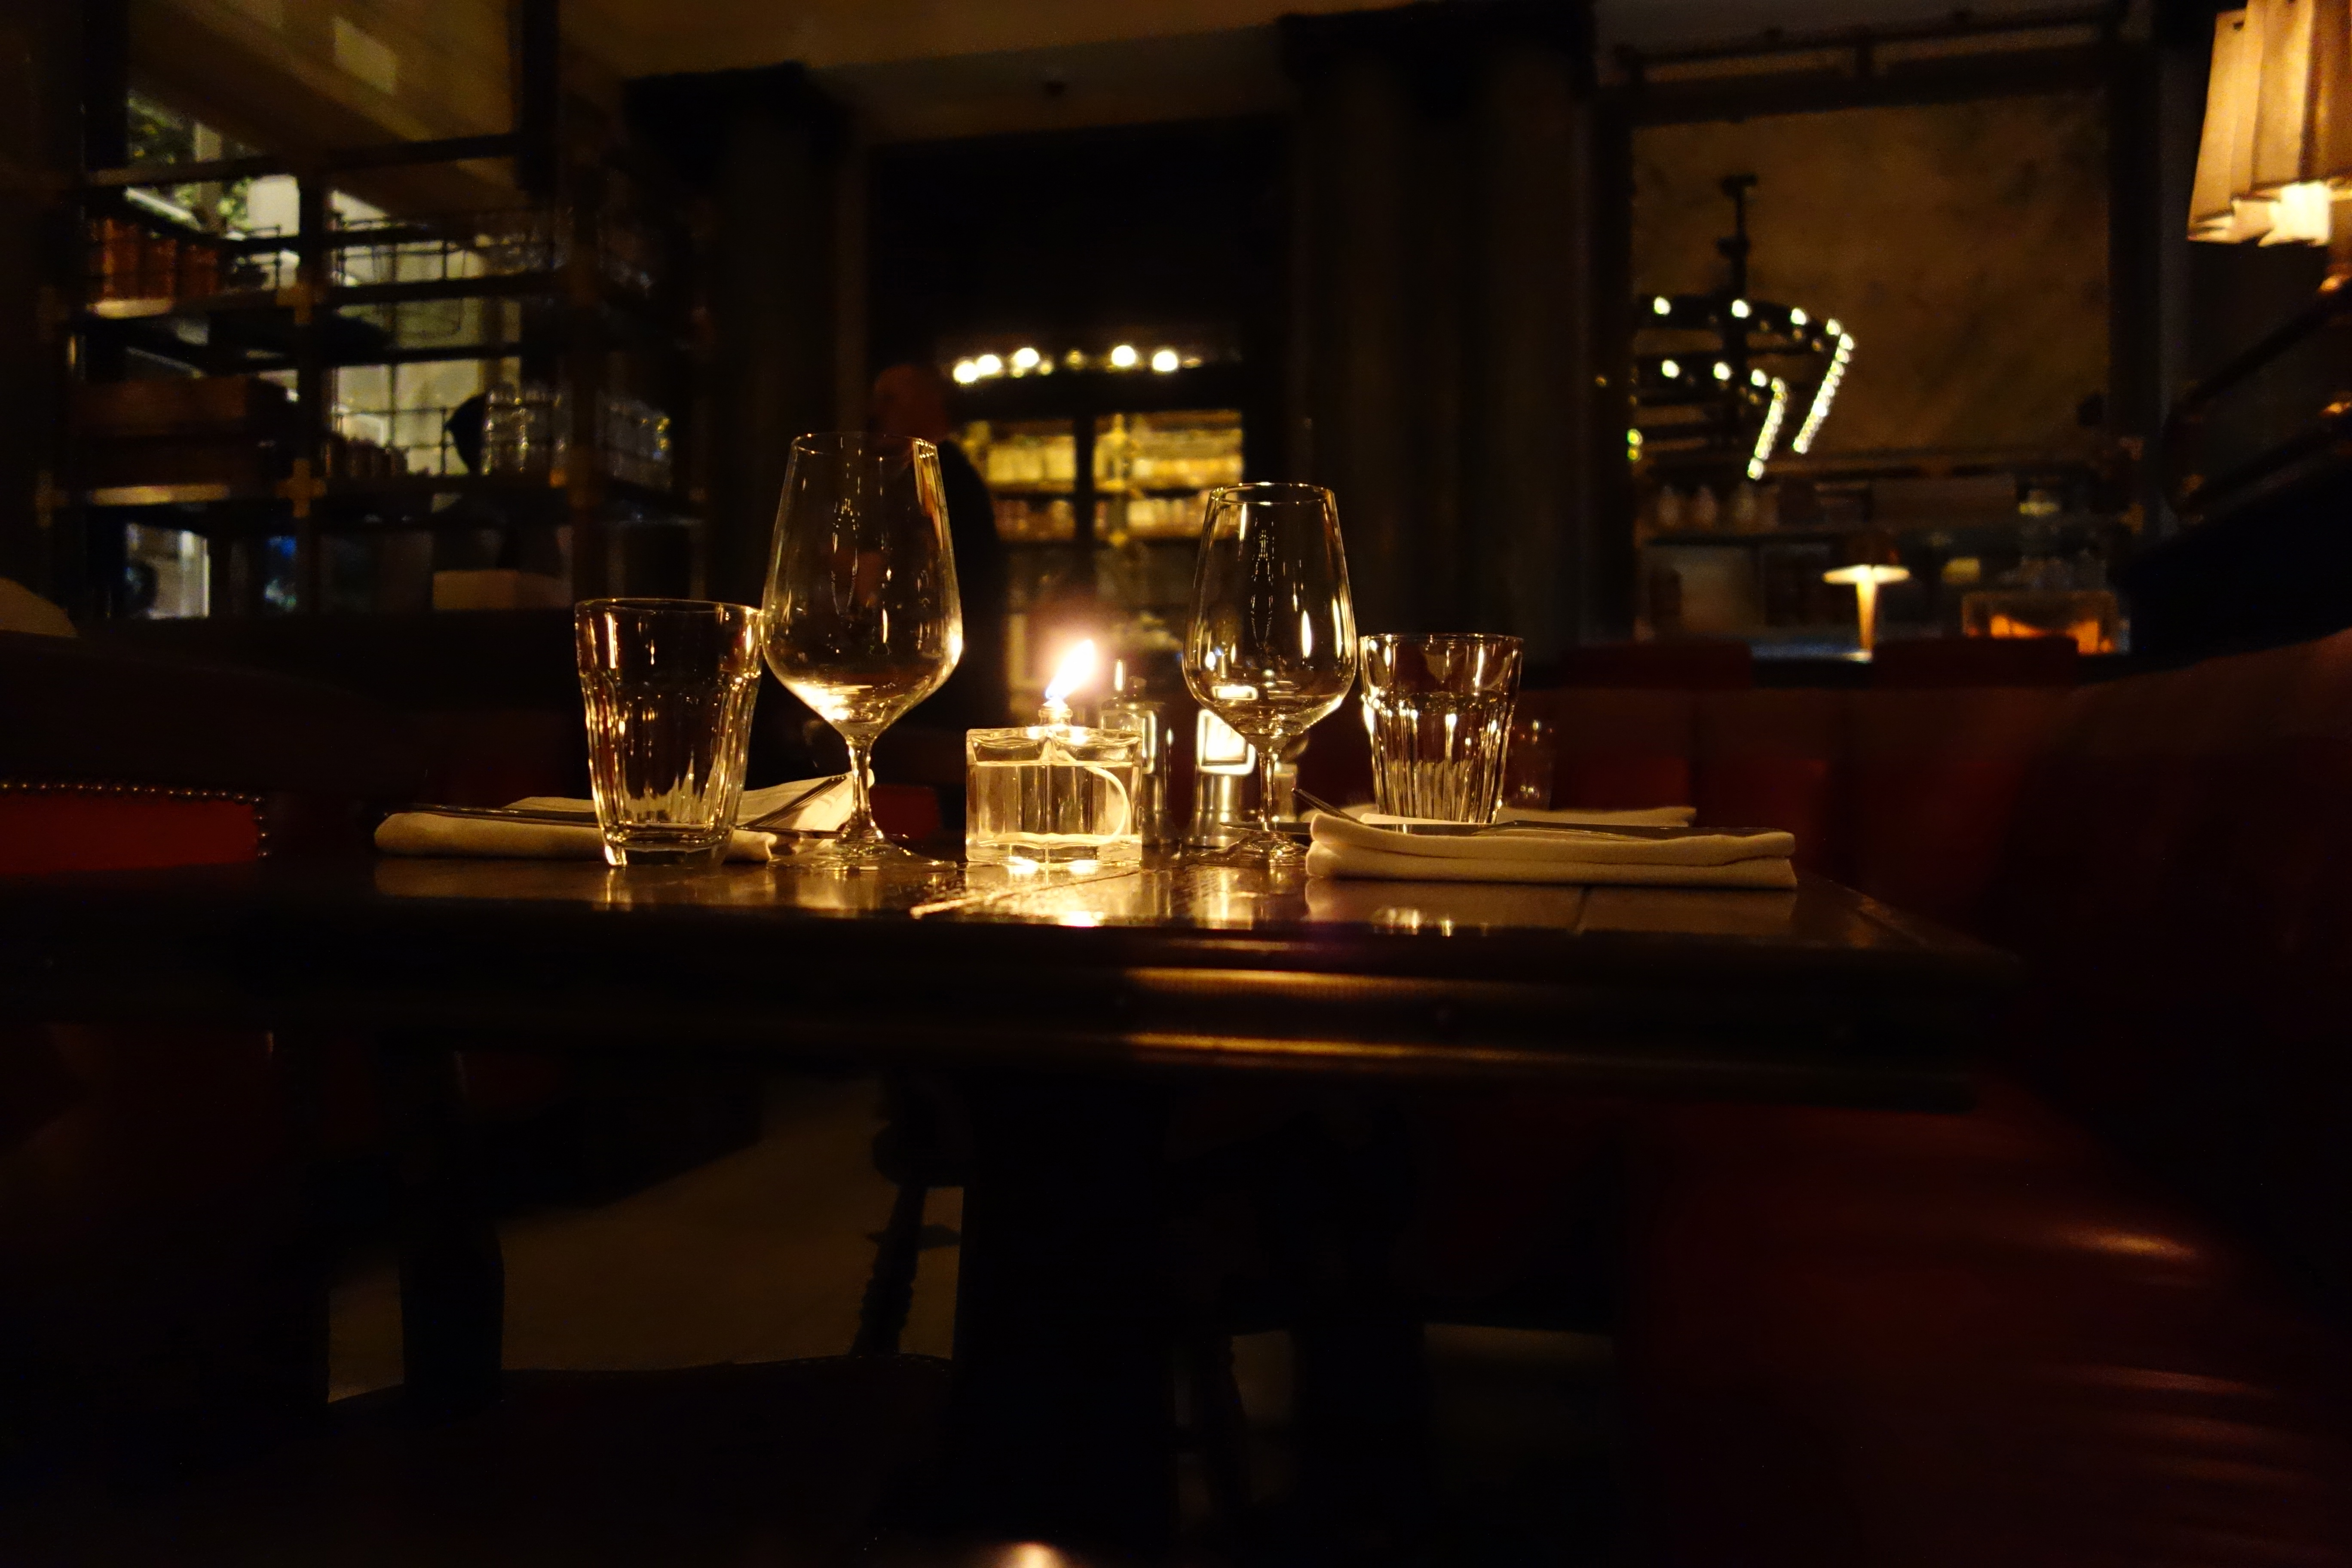 The holborn dining